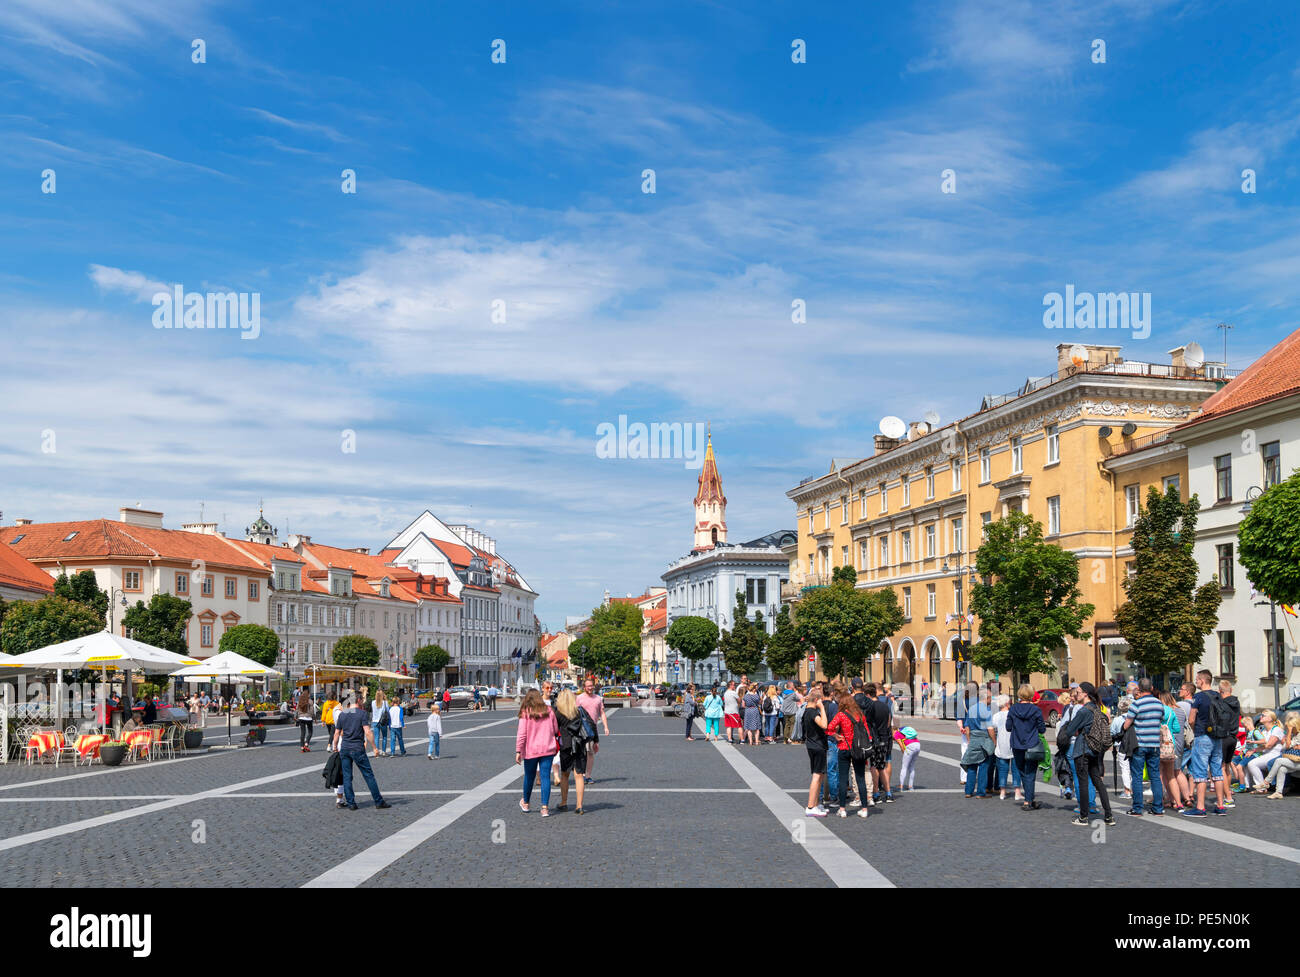 Town Hall Square (Rotušės aikštė) in the Old Town, Vilnius, Lithuania - Stock Image